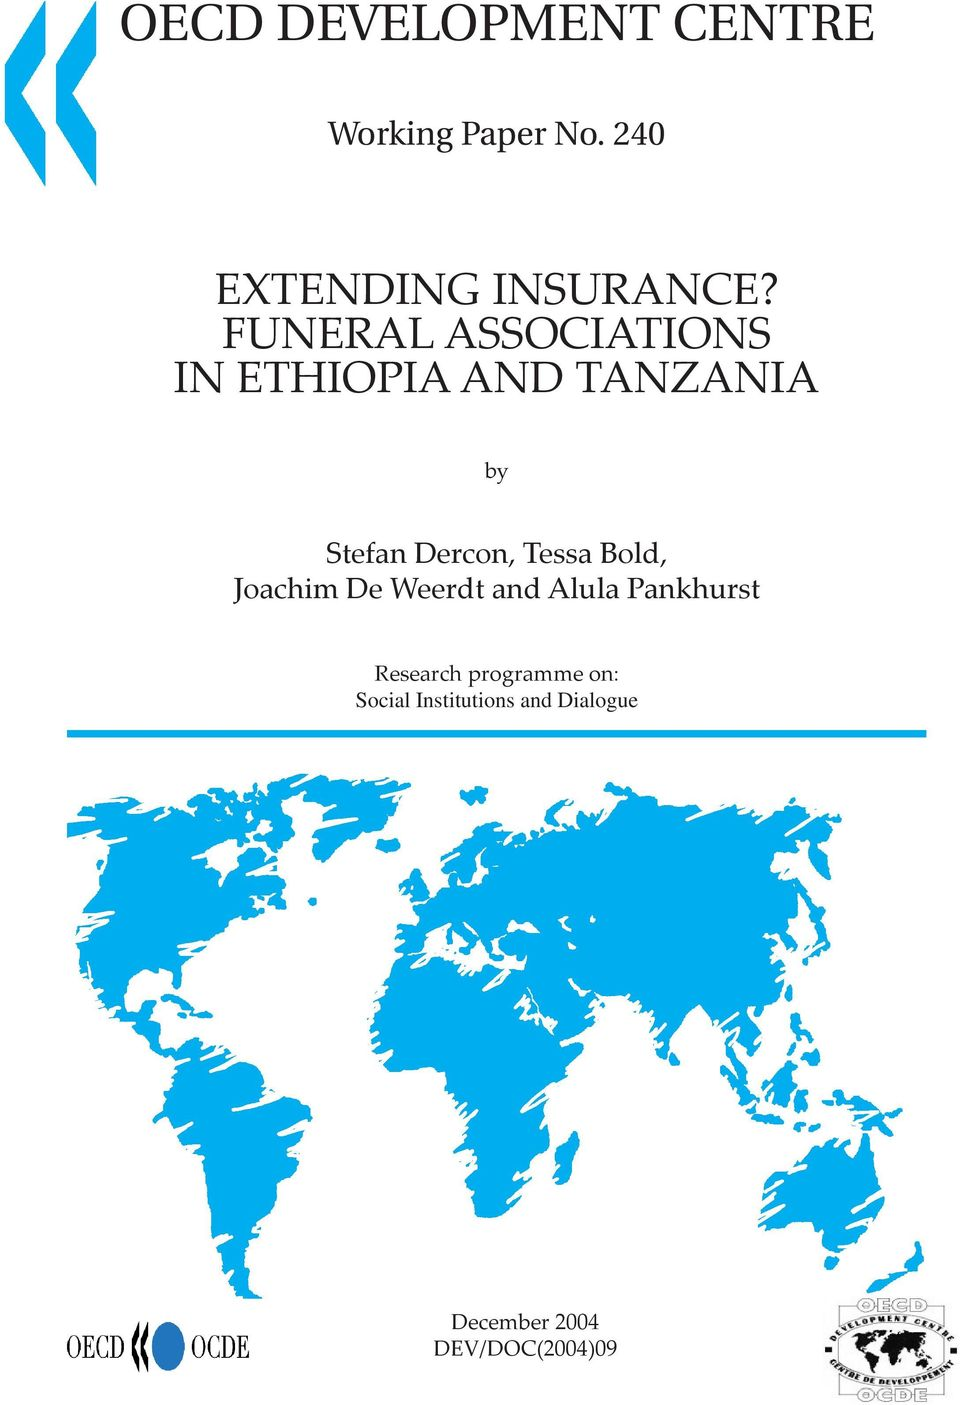 FUNERAL ASSOCIATIONS IN ETHIOPIA AND TANZANIA by Stefan